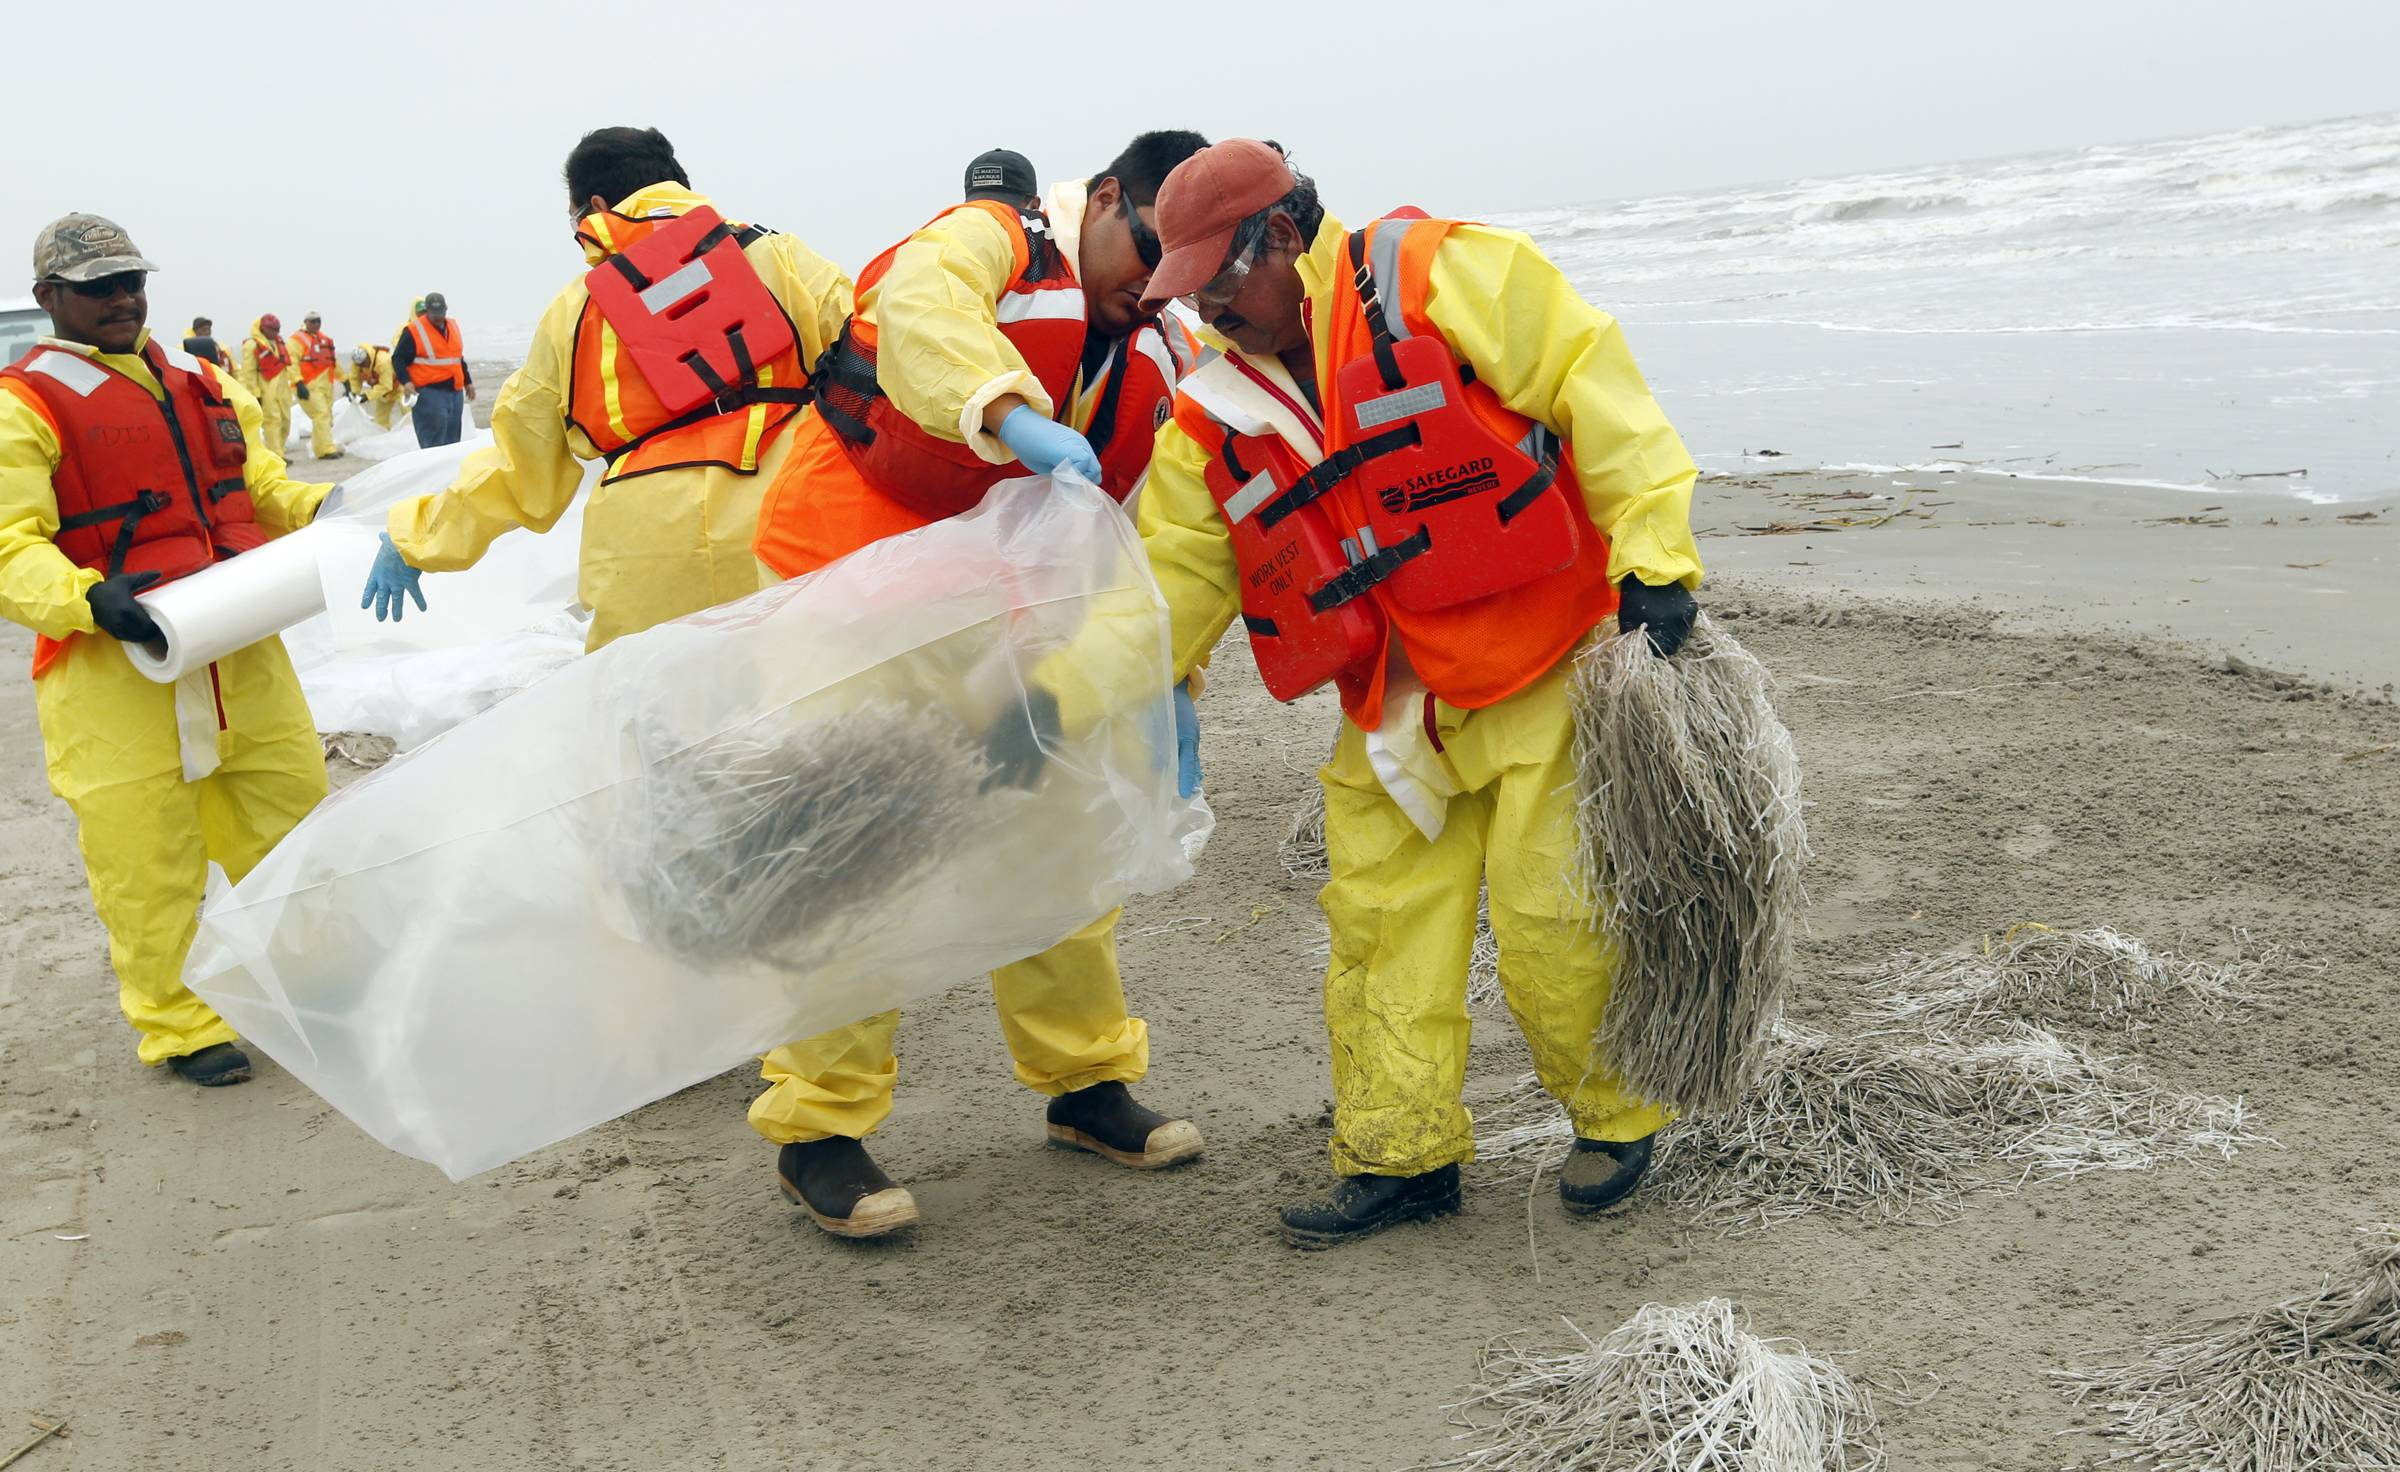 Oil spill response crews remove oil absorbent material placed on the beach between Stewart Beach and East Beach in Galveston on Thursday March 27, 2014. The material was placed on the stretch of beach as a precaution as cleanup continues after 168,000 gallons of heavy fuel oil spilled in to Galveston Bay on Saturday.